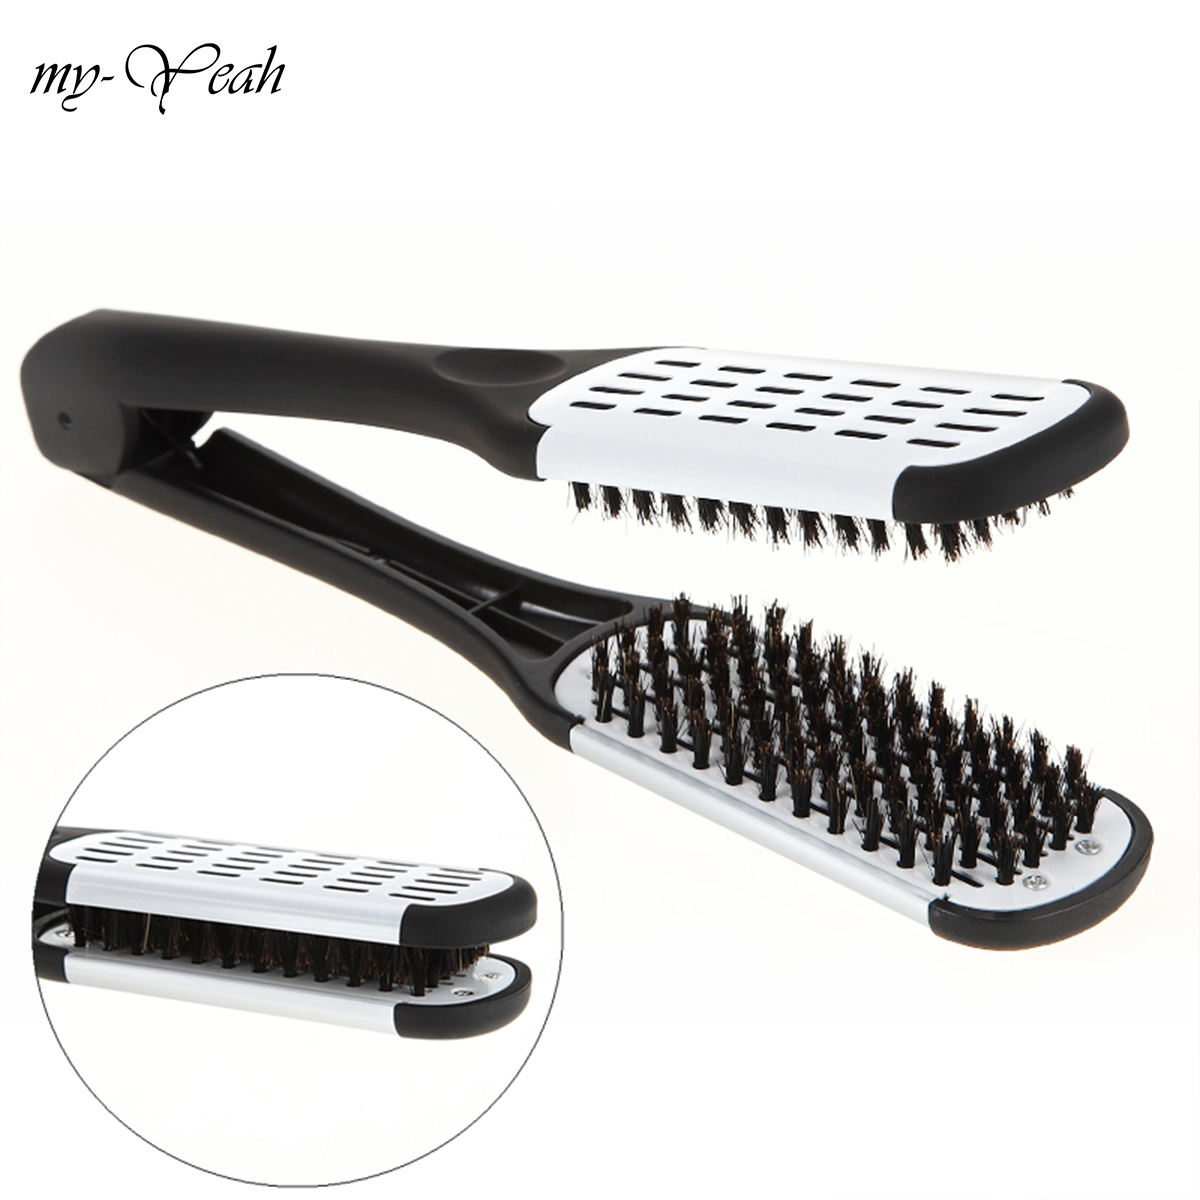 Pro Frisør Straightener Keramisk Hair Straightening Double Børster V Shape Comb Clamp Ikke Hurt Styling Tools